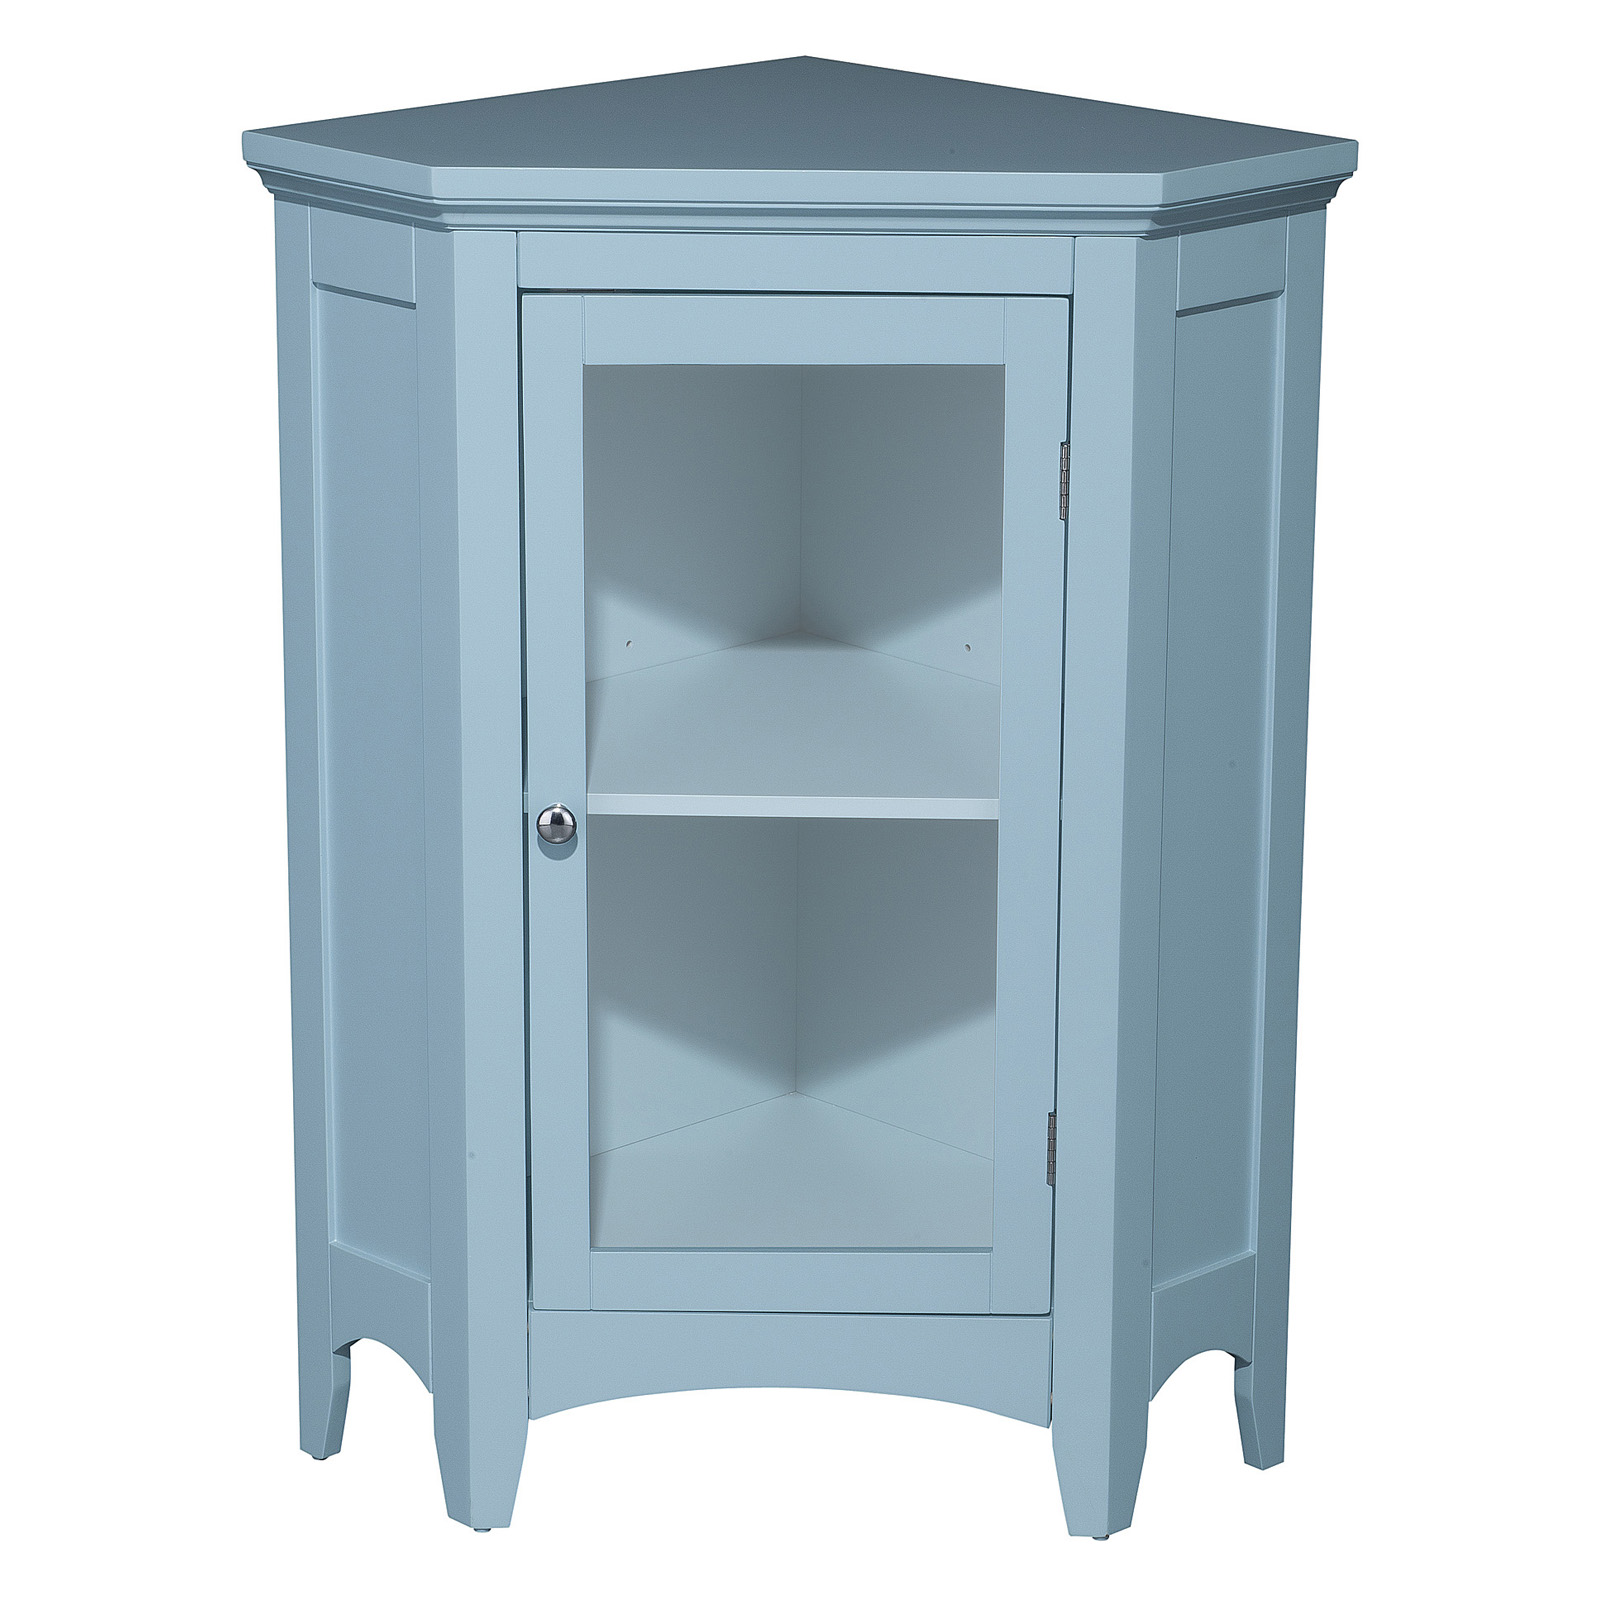 Elegant Home Hampton 1 Door Corner Floor Cabinet at Hayneedle